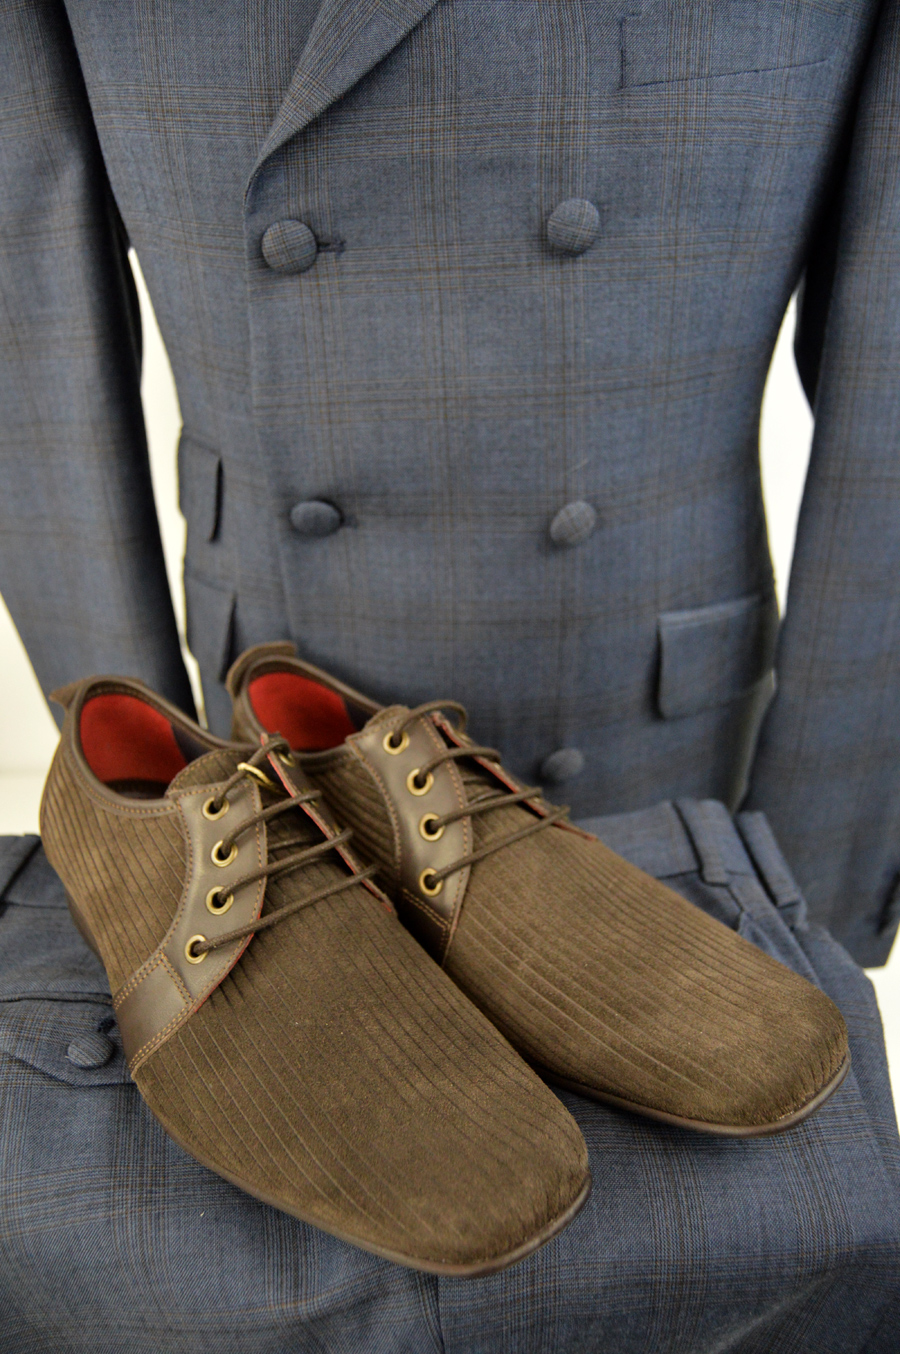 modshoes-exclusive-corded-shoes-with-mod-suit-from-adaptor-clothing-03